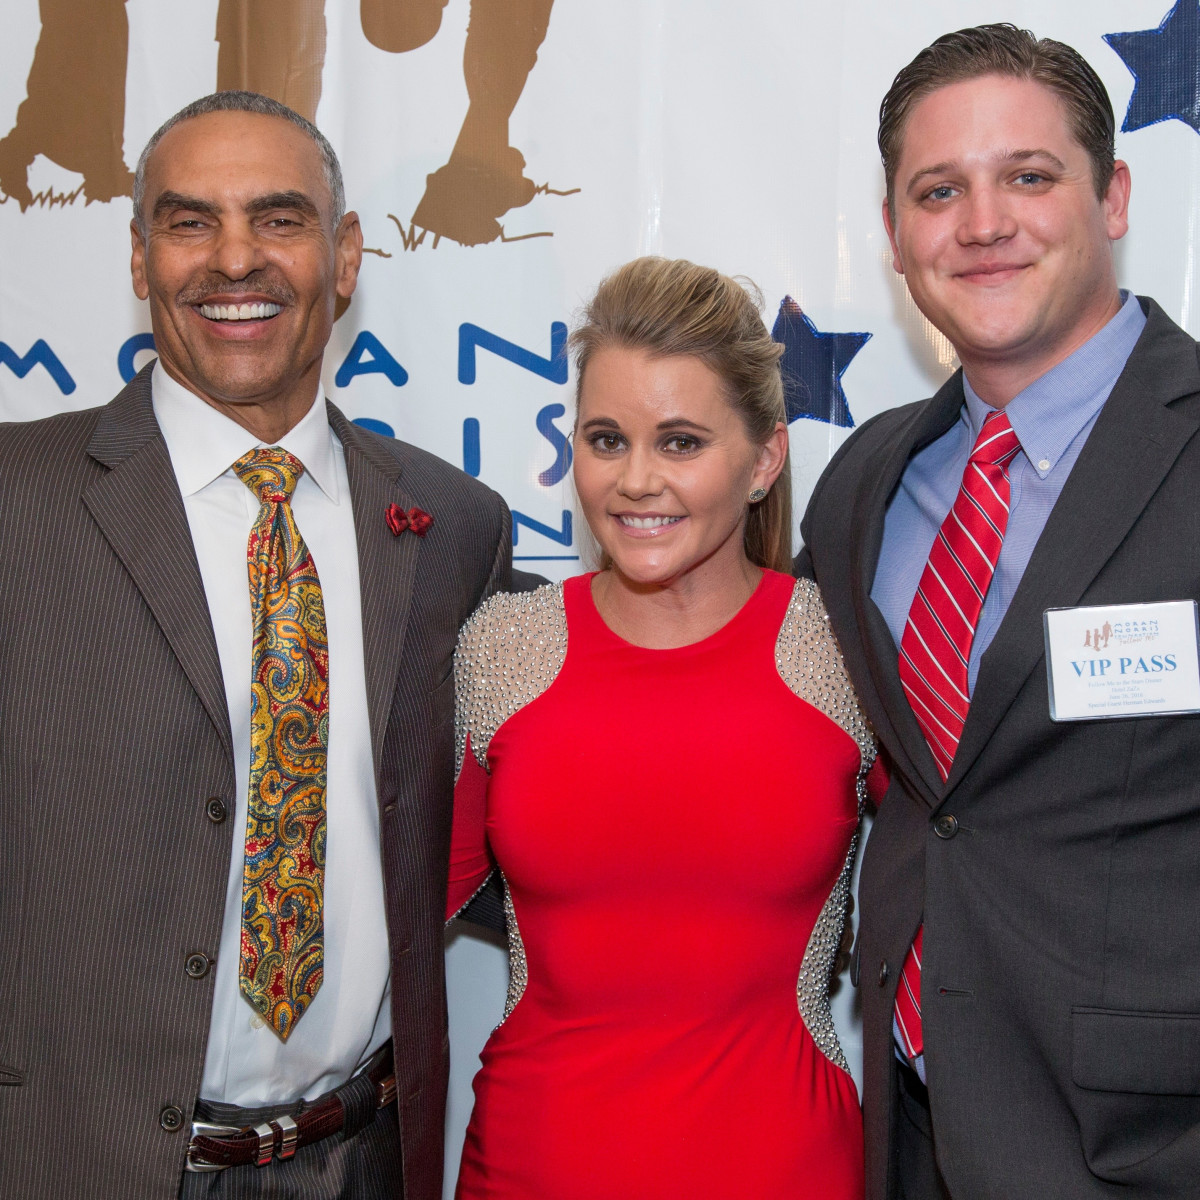 Herm Edwards, Jayme Lamm, Travis Frey at Moran Norris gala